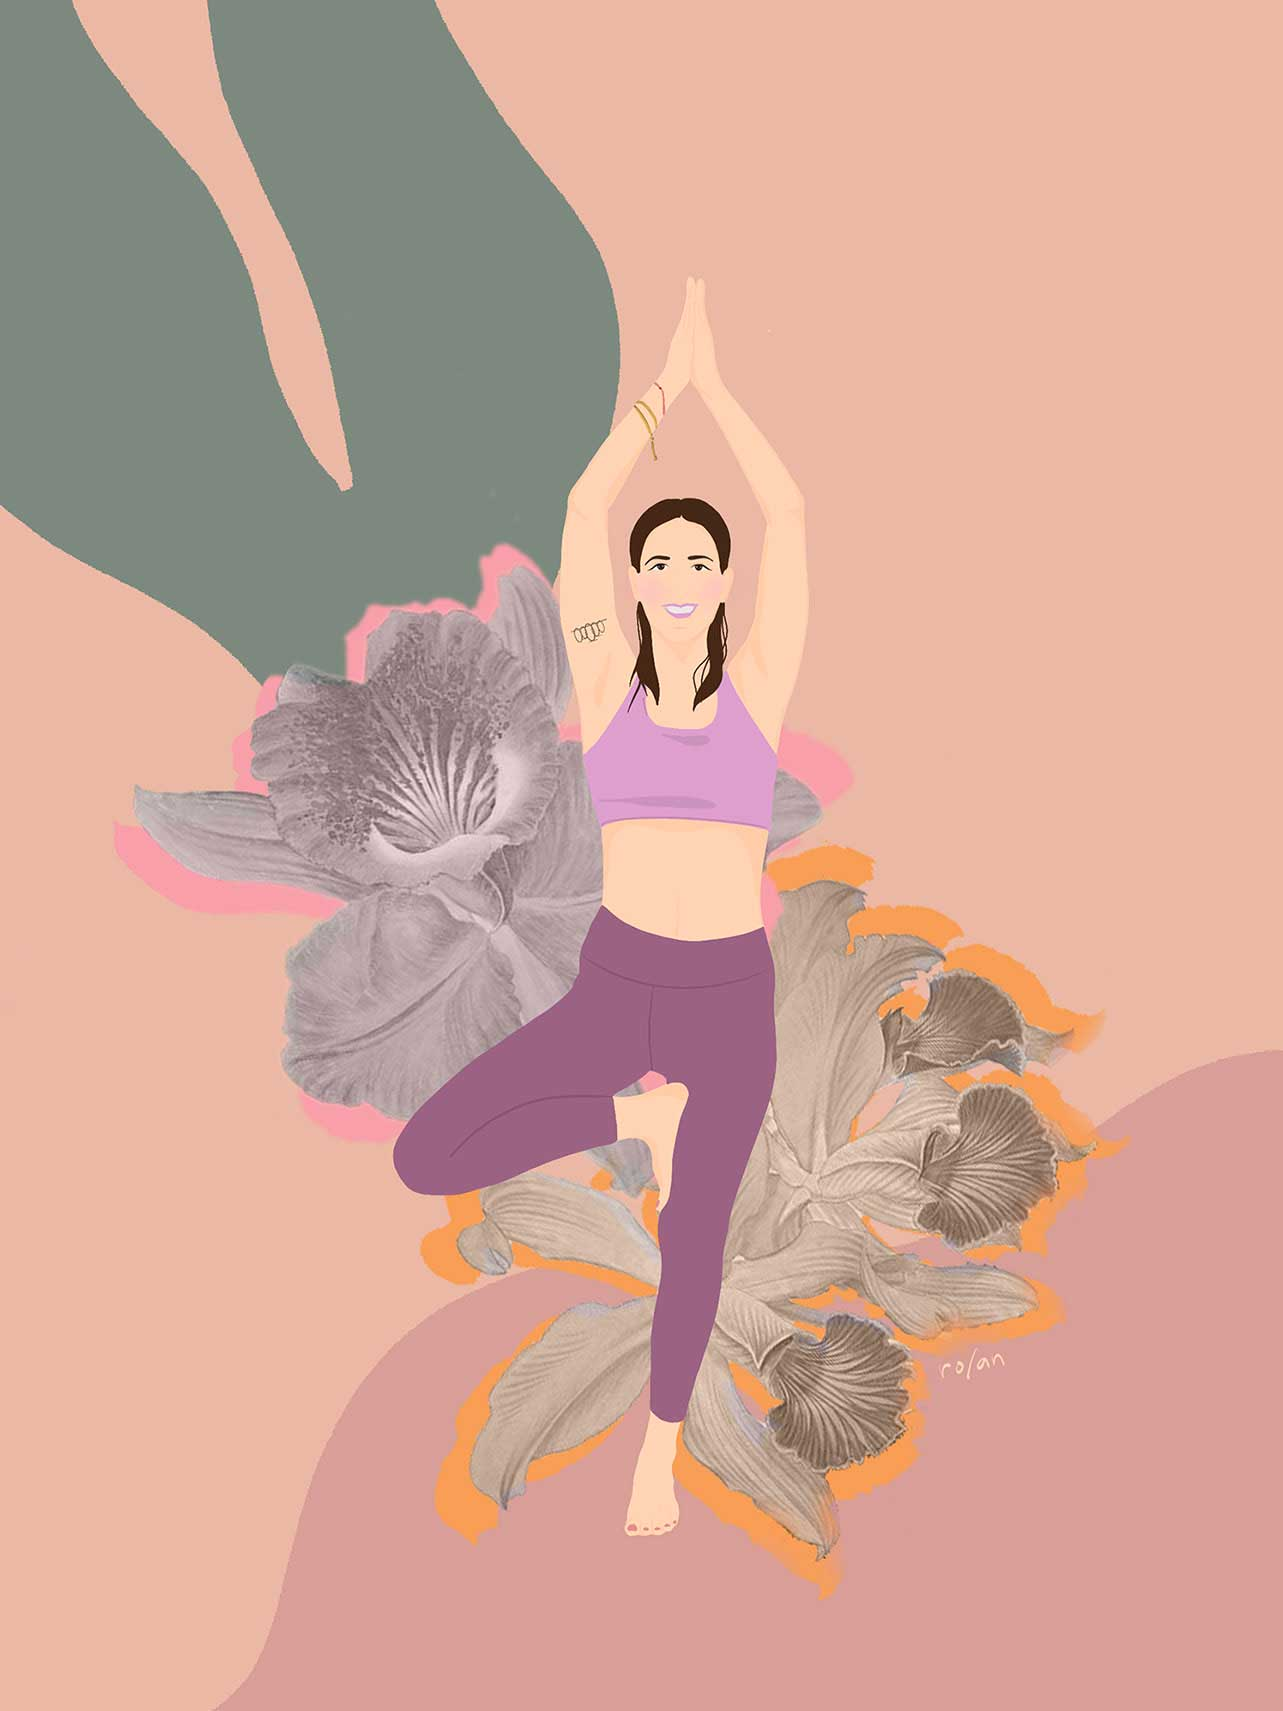 ro/an yoga illustration HER yoga for hormones and fertility